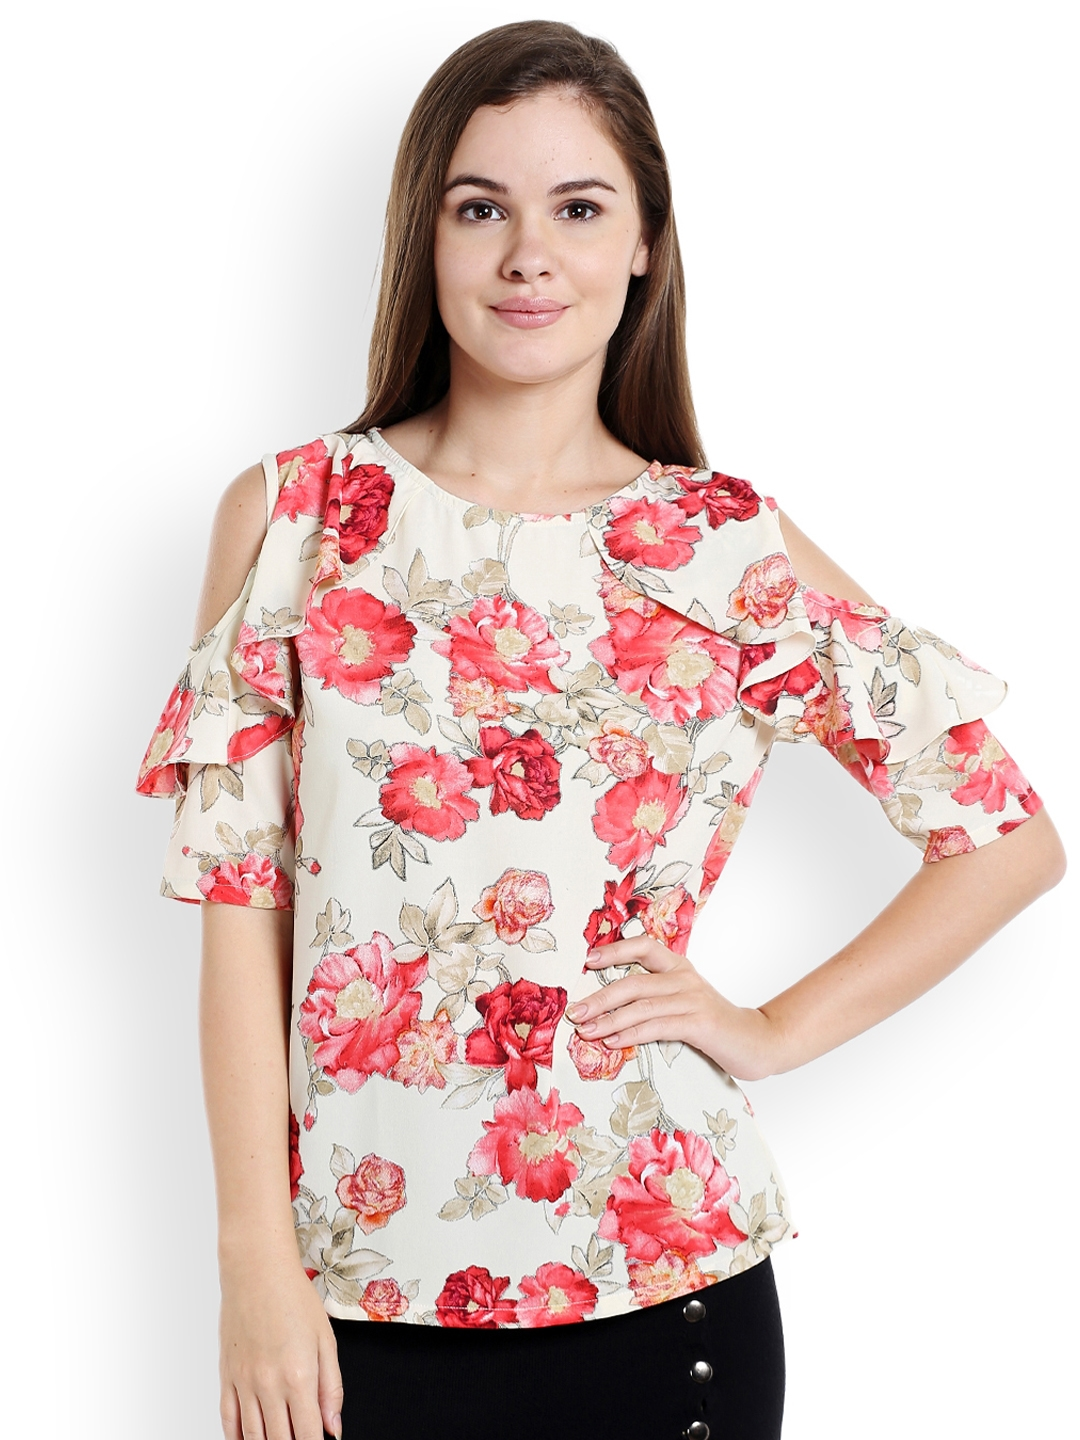 931f7255c636 Buy Ishin Women White Floral Print Cold Shoulder Top - Tops for ...